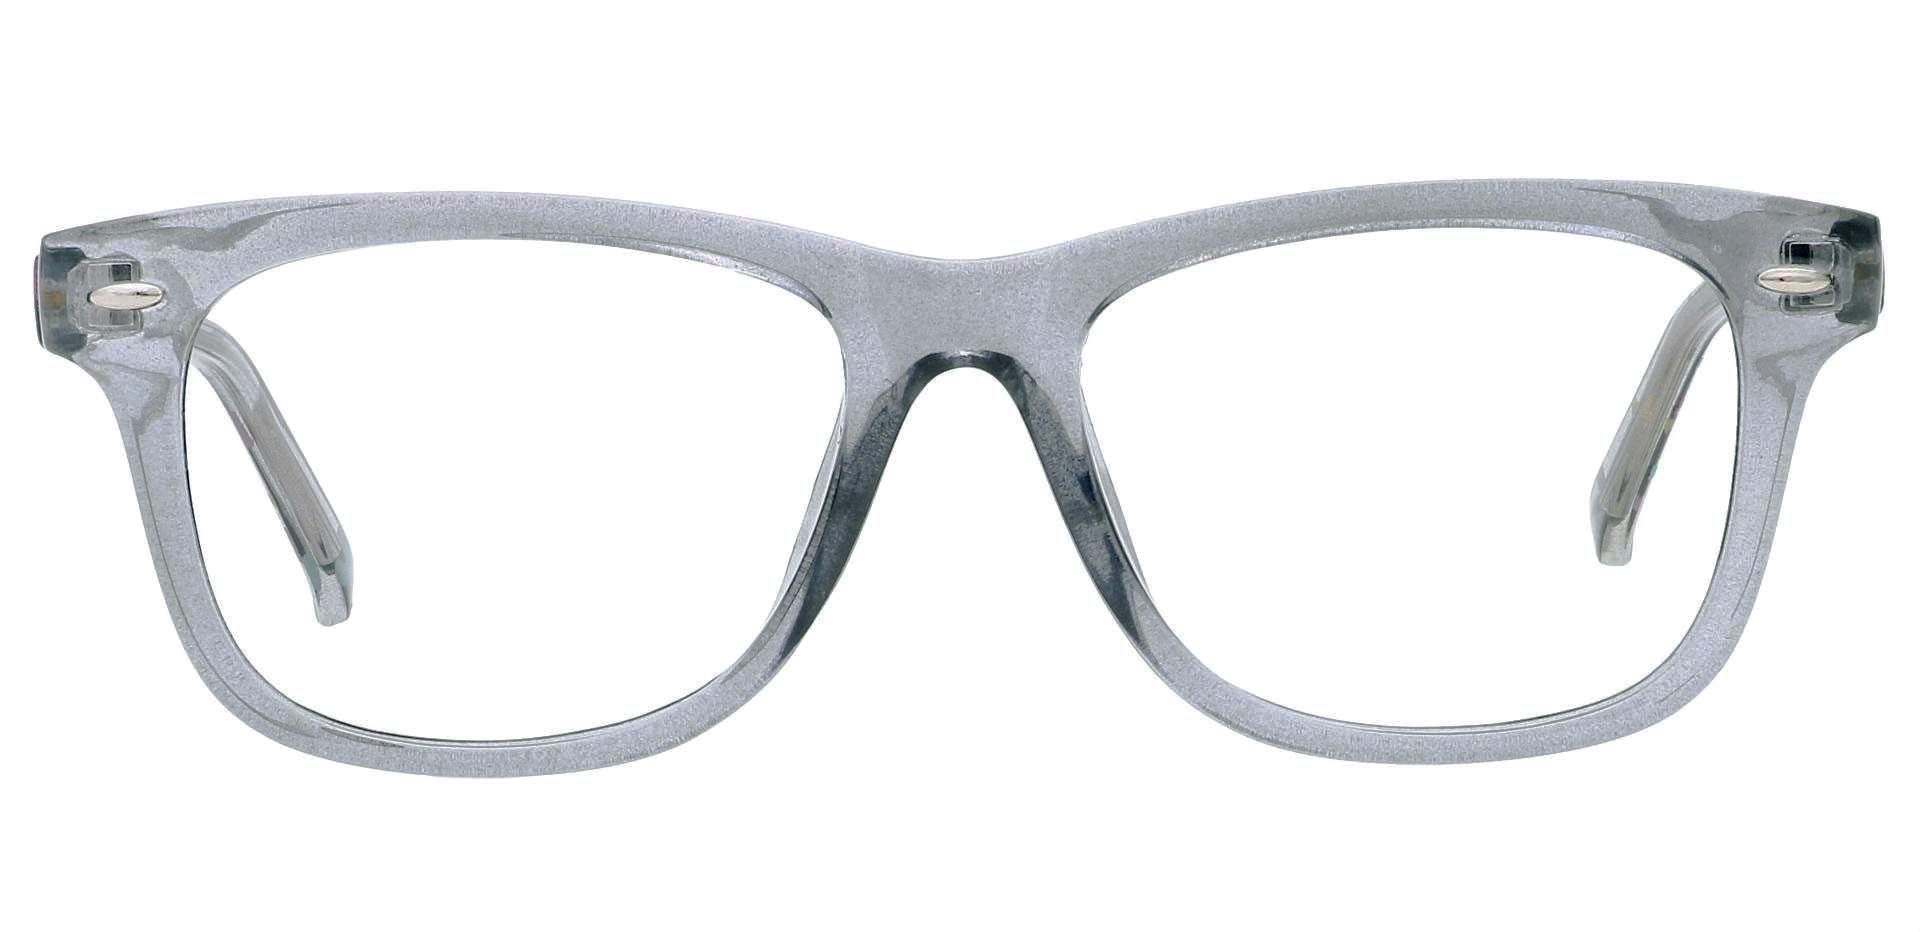 Dexter Oval Prescription Glasses - Gray